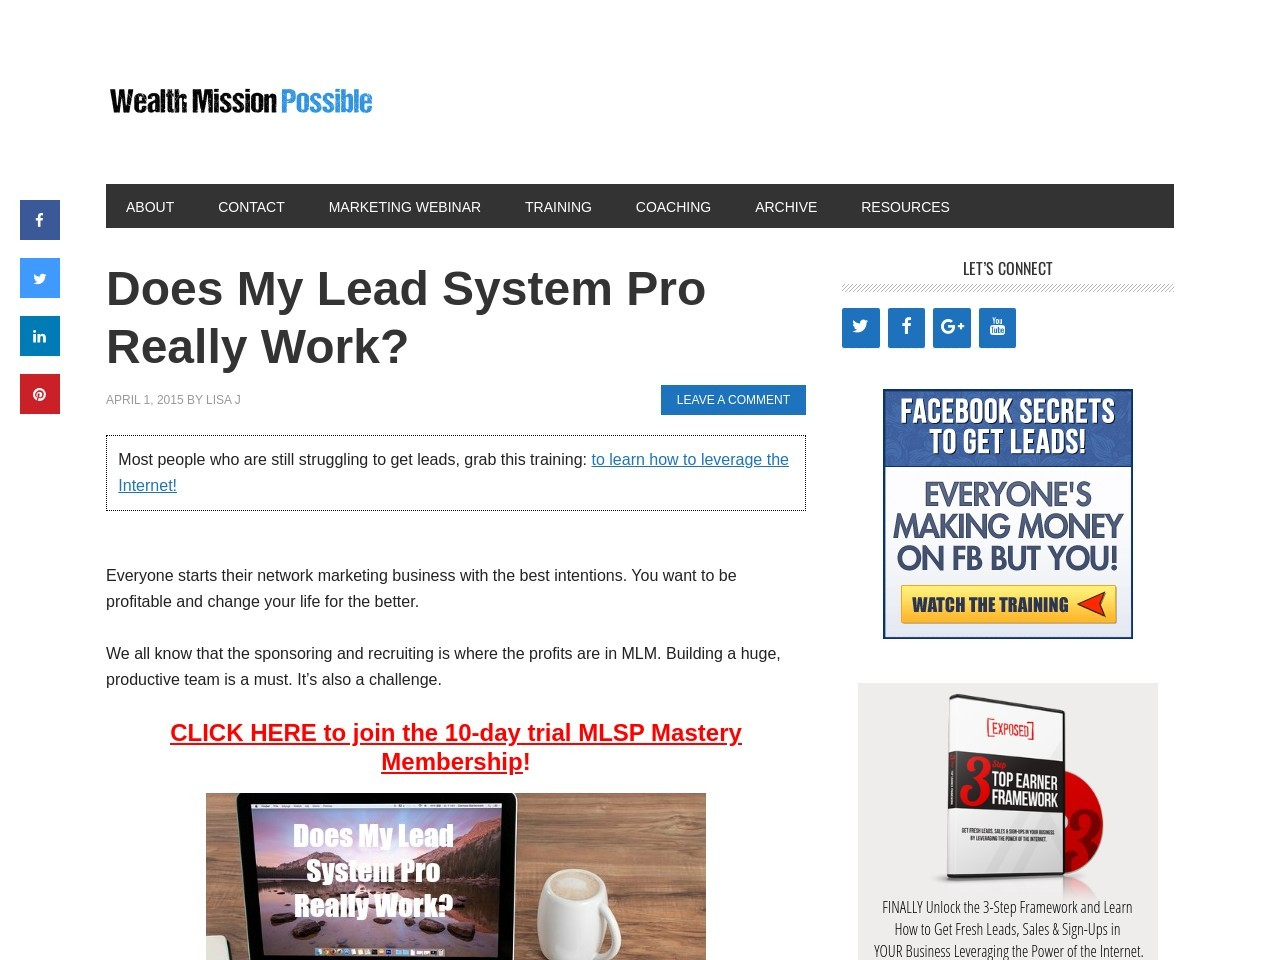 Does My Lead System Pro Really Work?